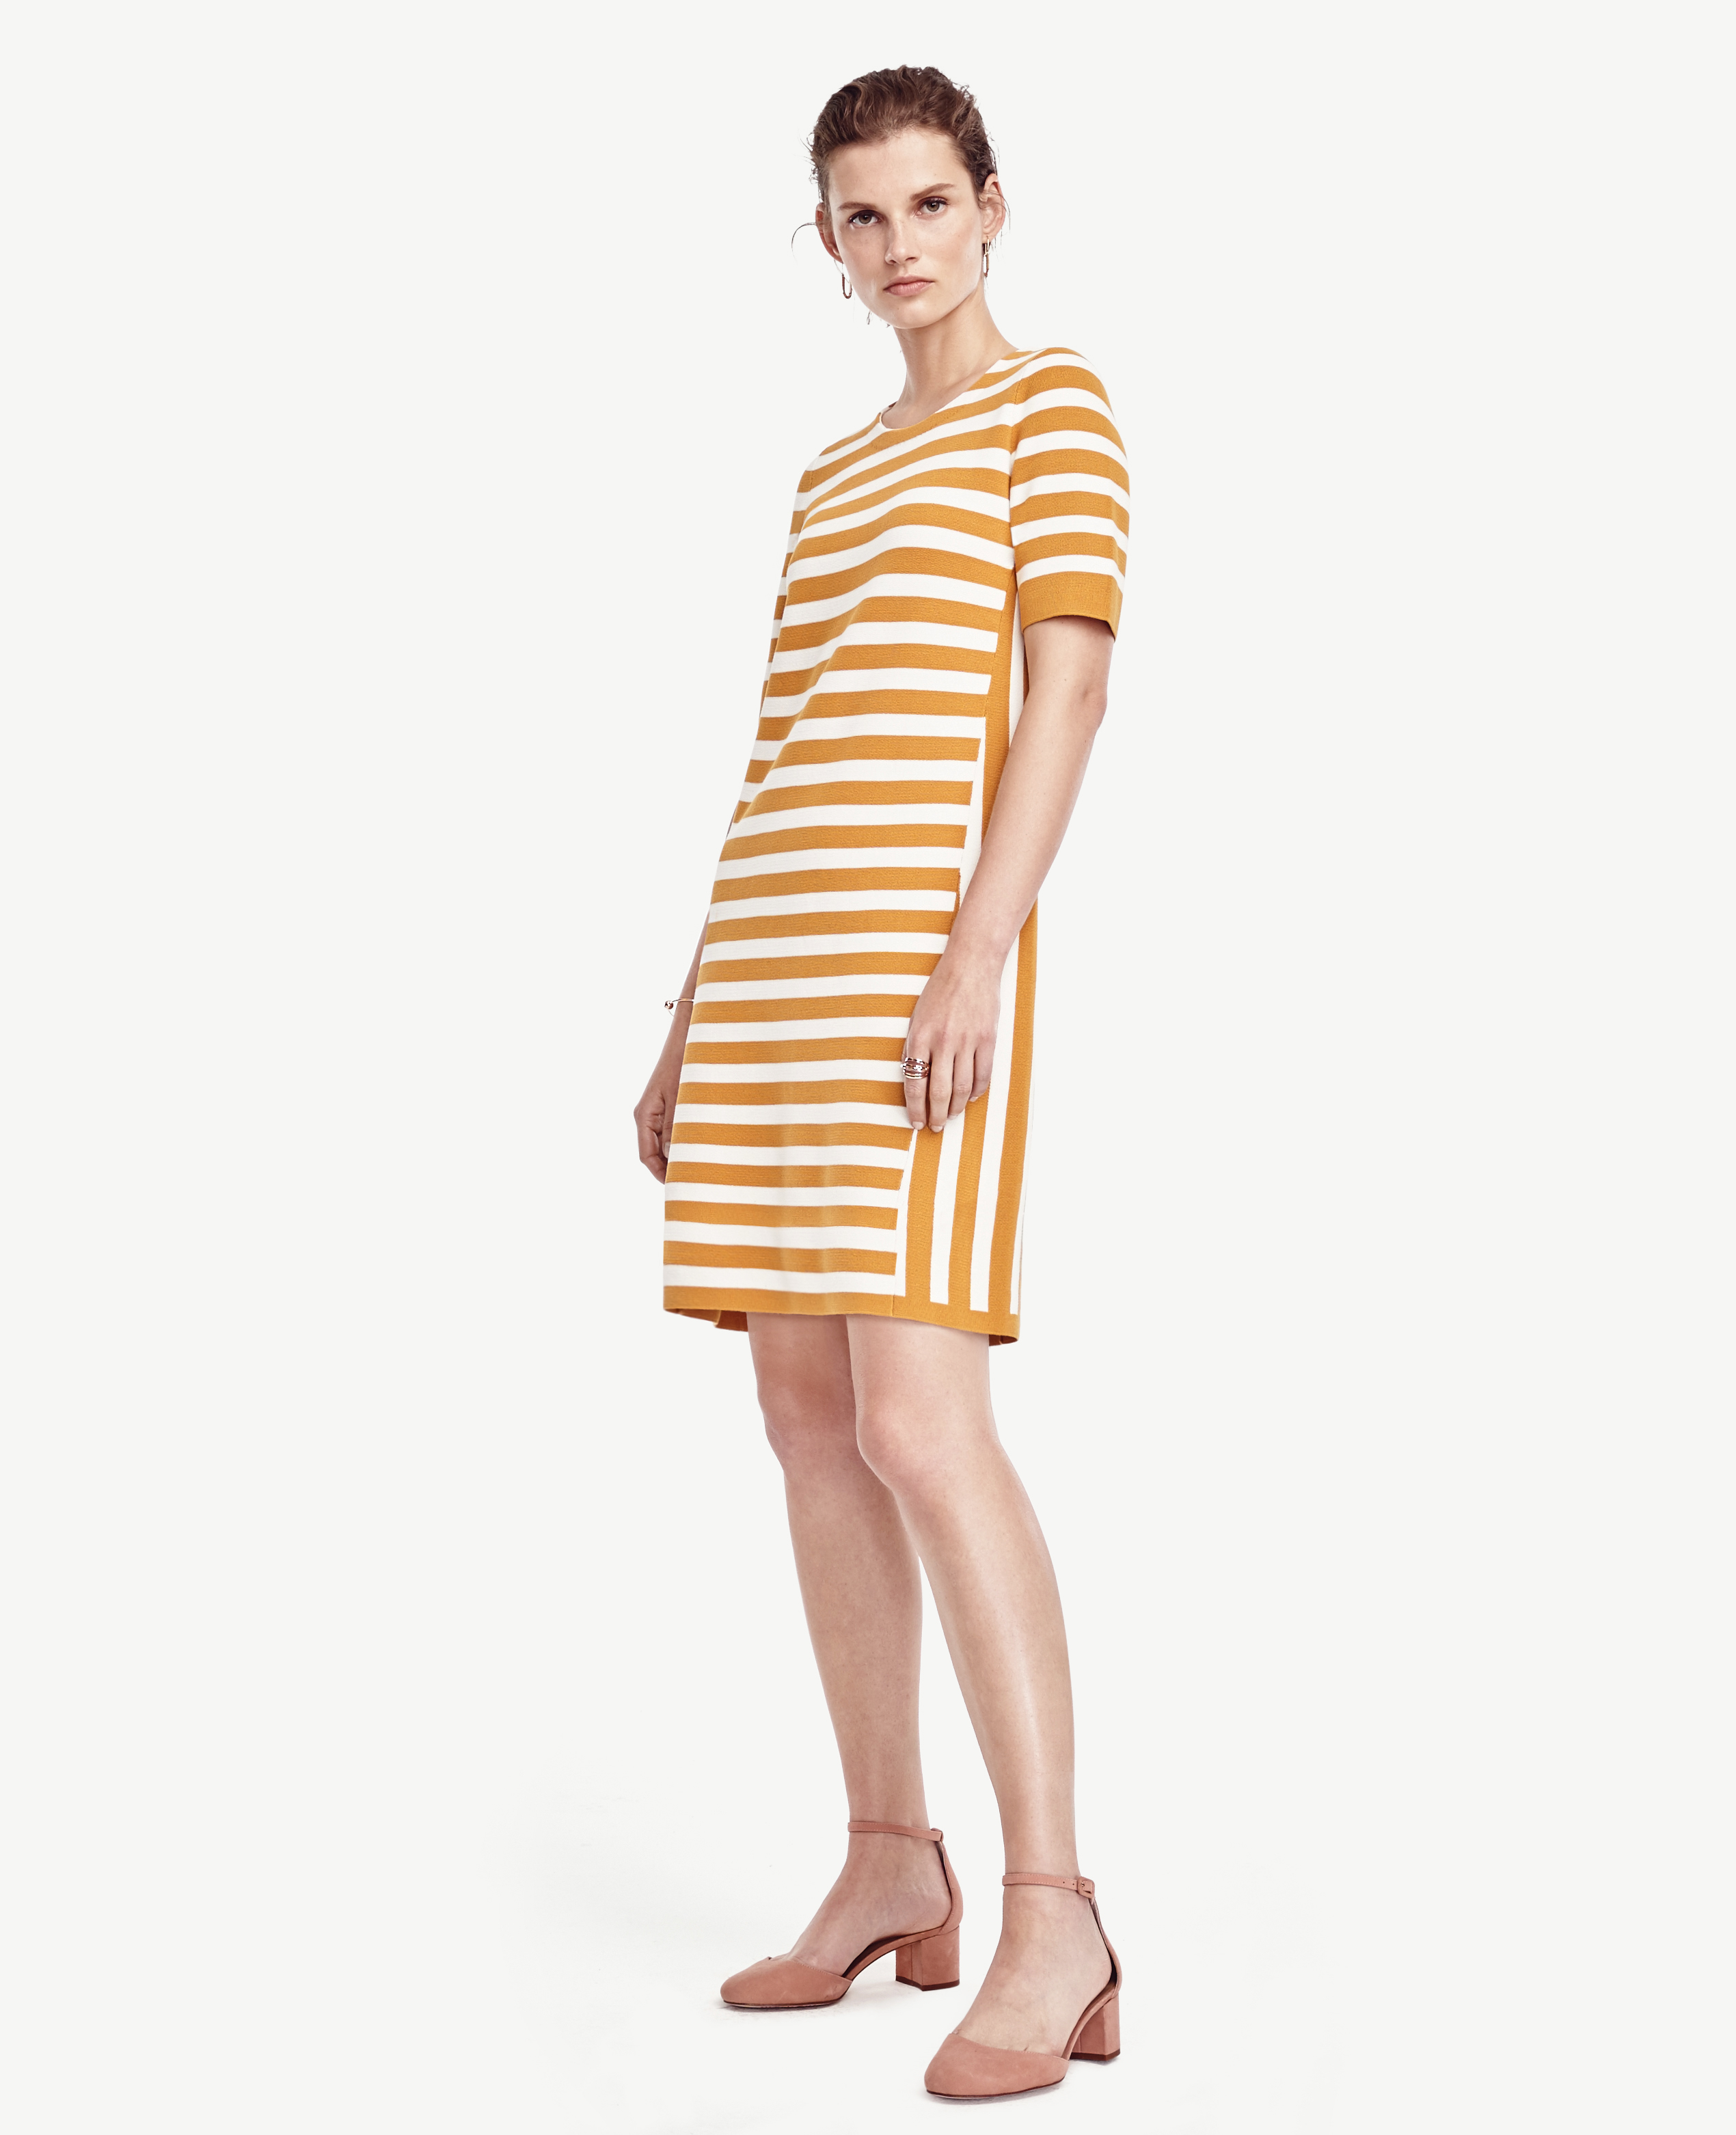 Ann taylor Petite Striped Short Sleeve Sweater Dress in Yellow | Lyst